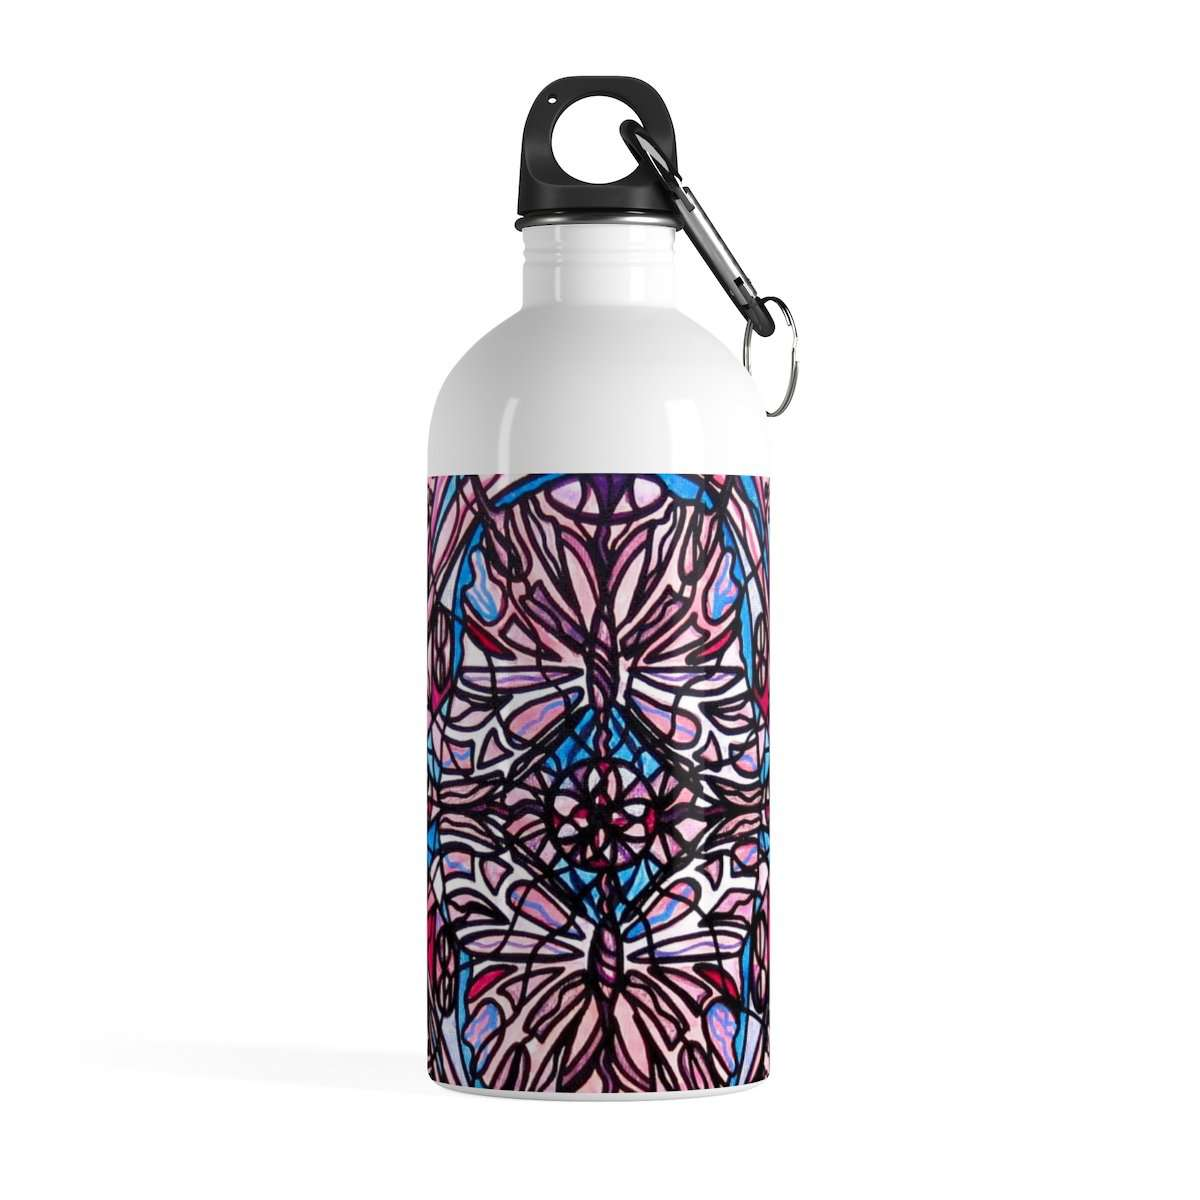 Conceive - Stainless Steel Water Bottle